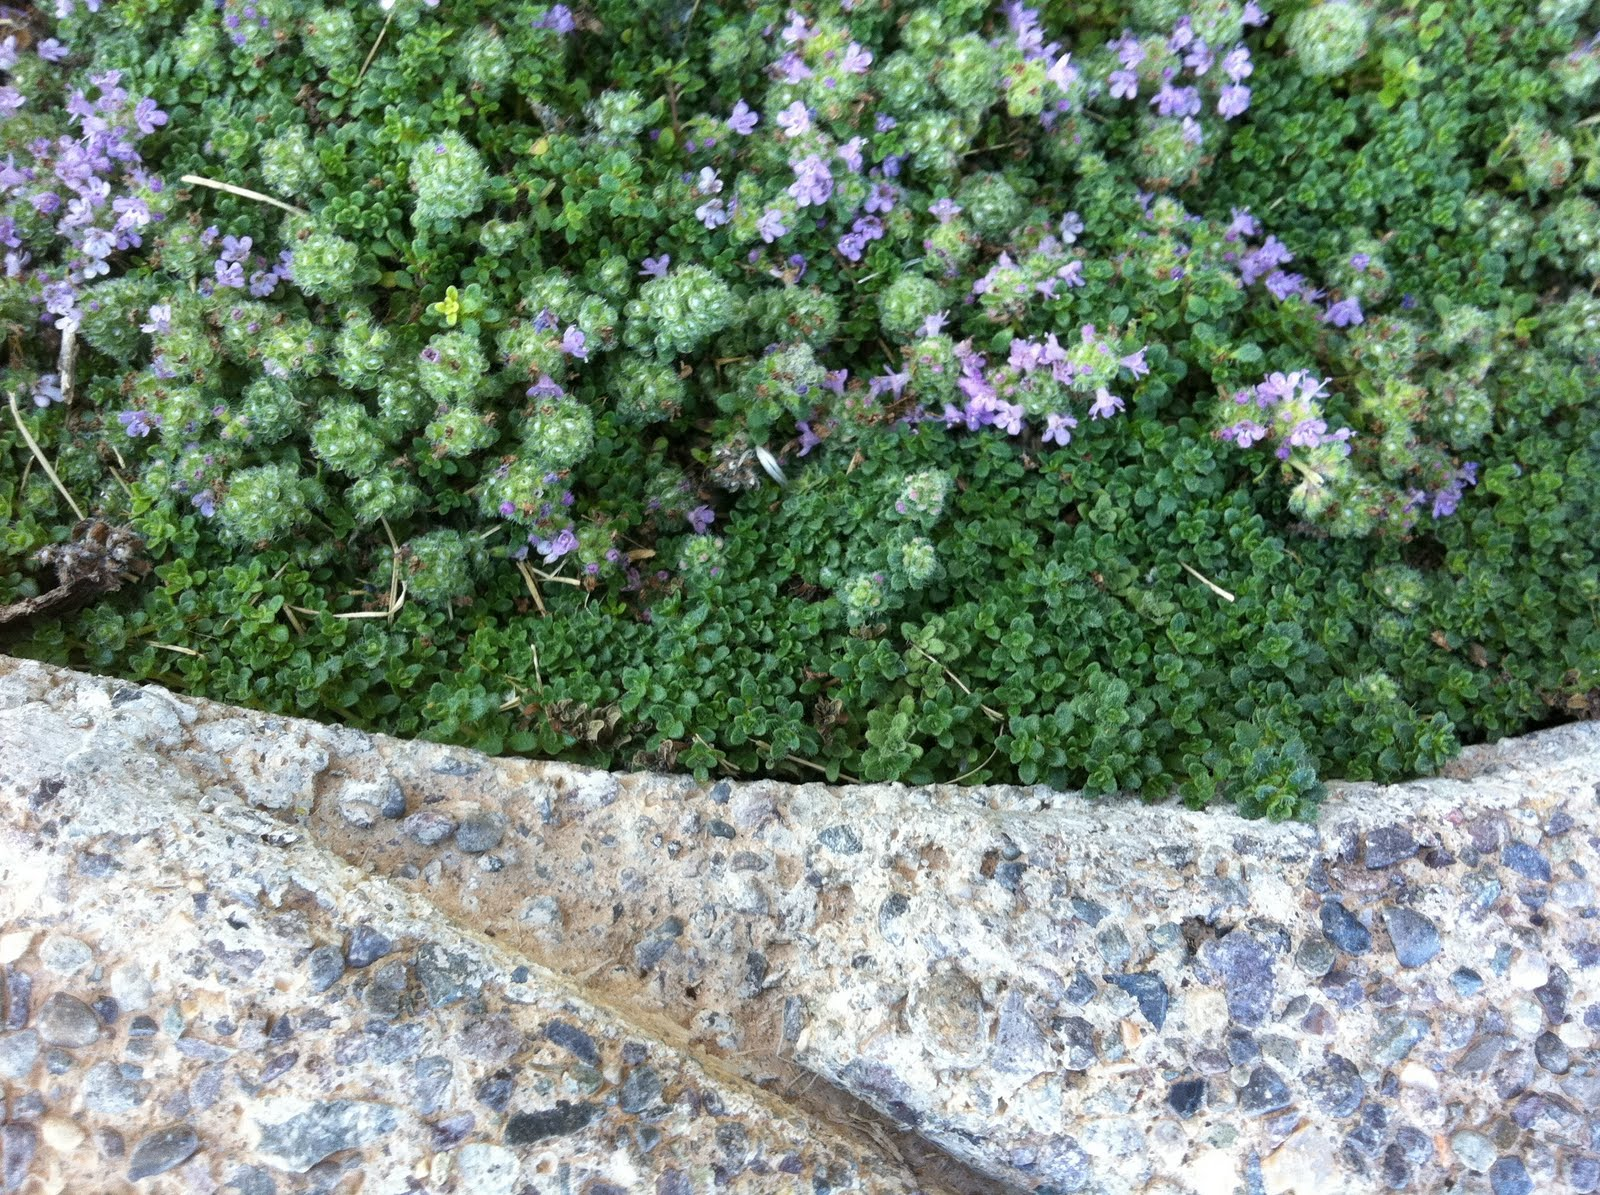 teeny tiny leaves of elfin thyme in the foreground wooly thyme moving ...